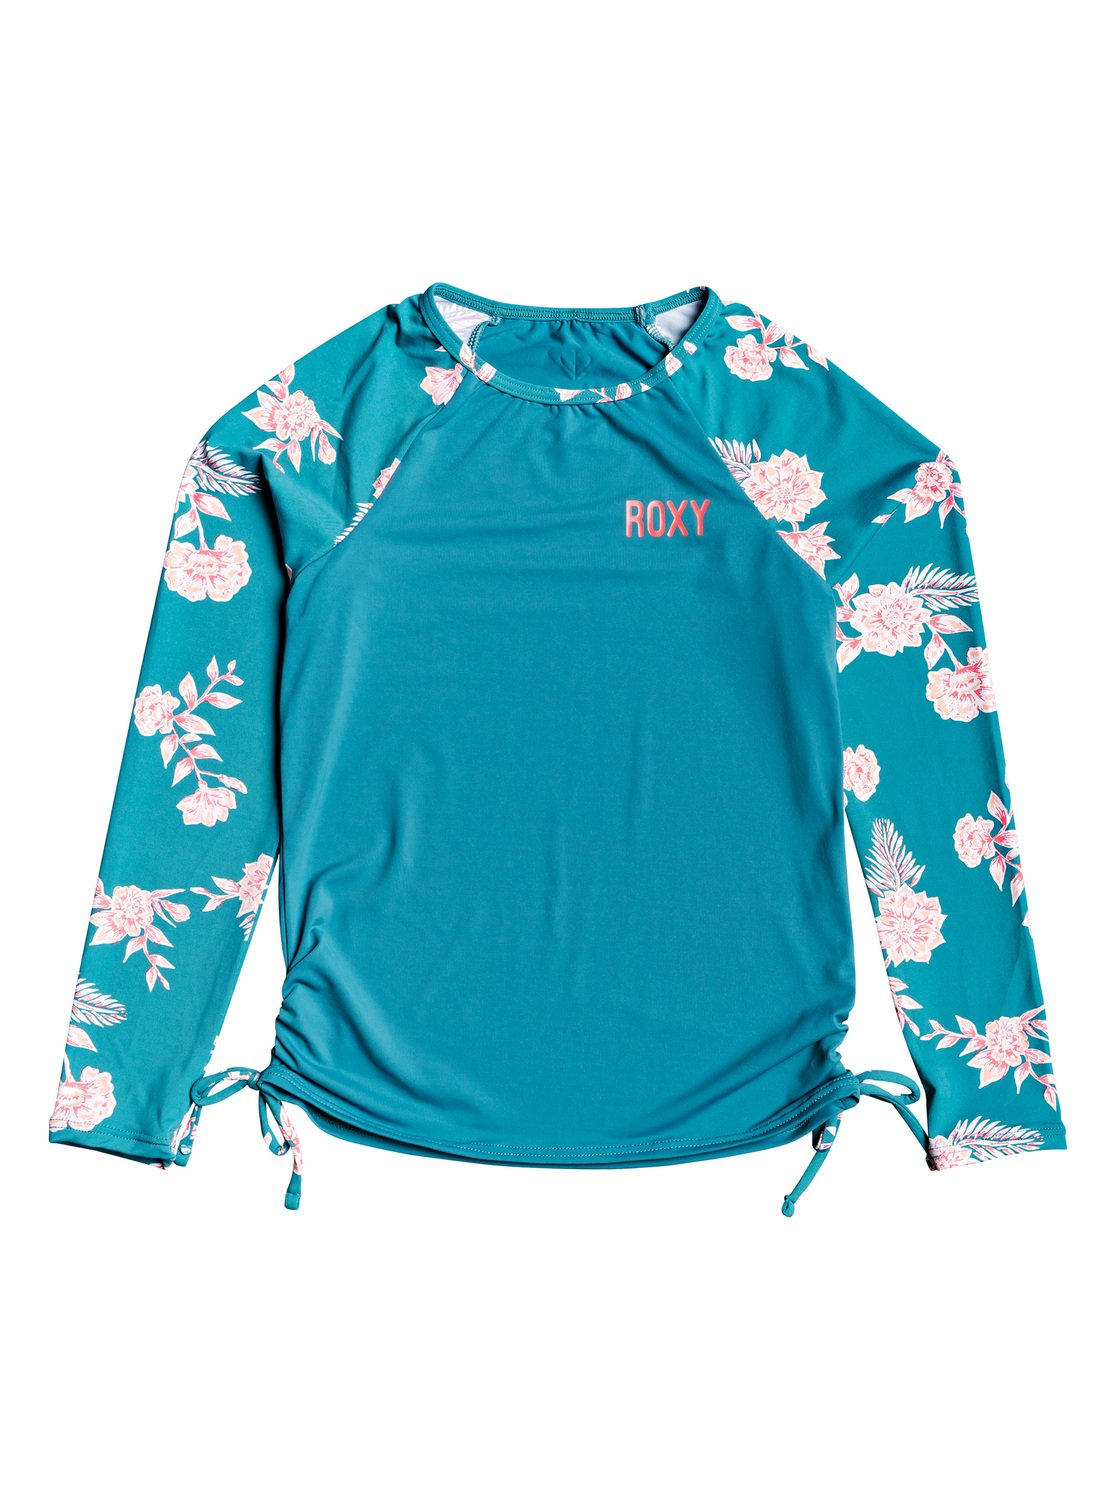 ROXY GIRLS MAGICAL ROXY LS RASHGUARD